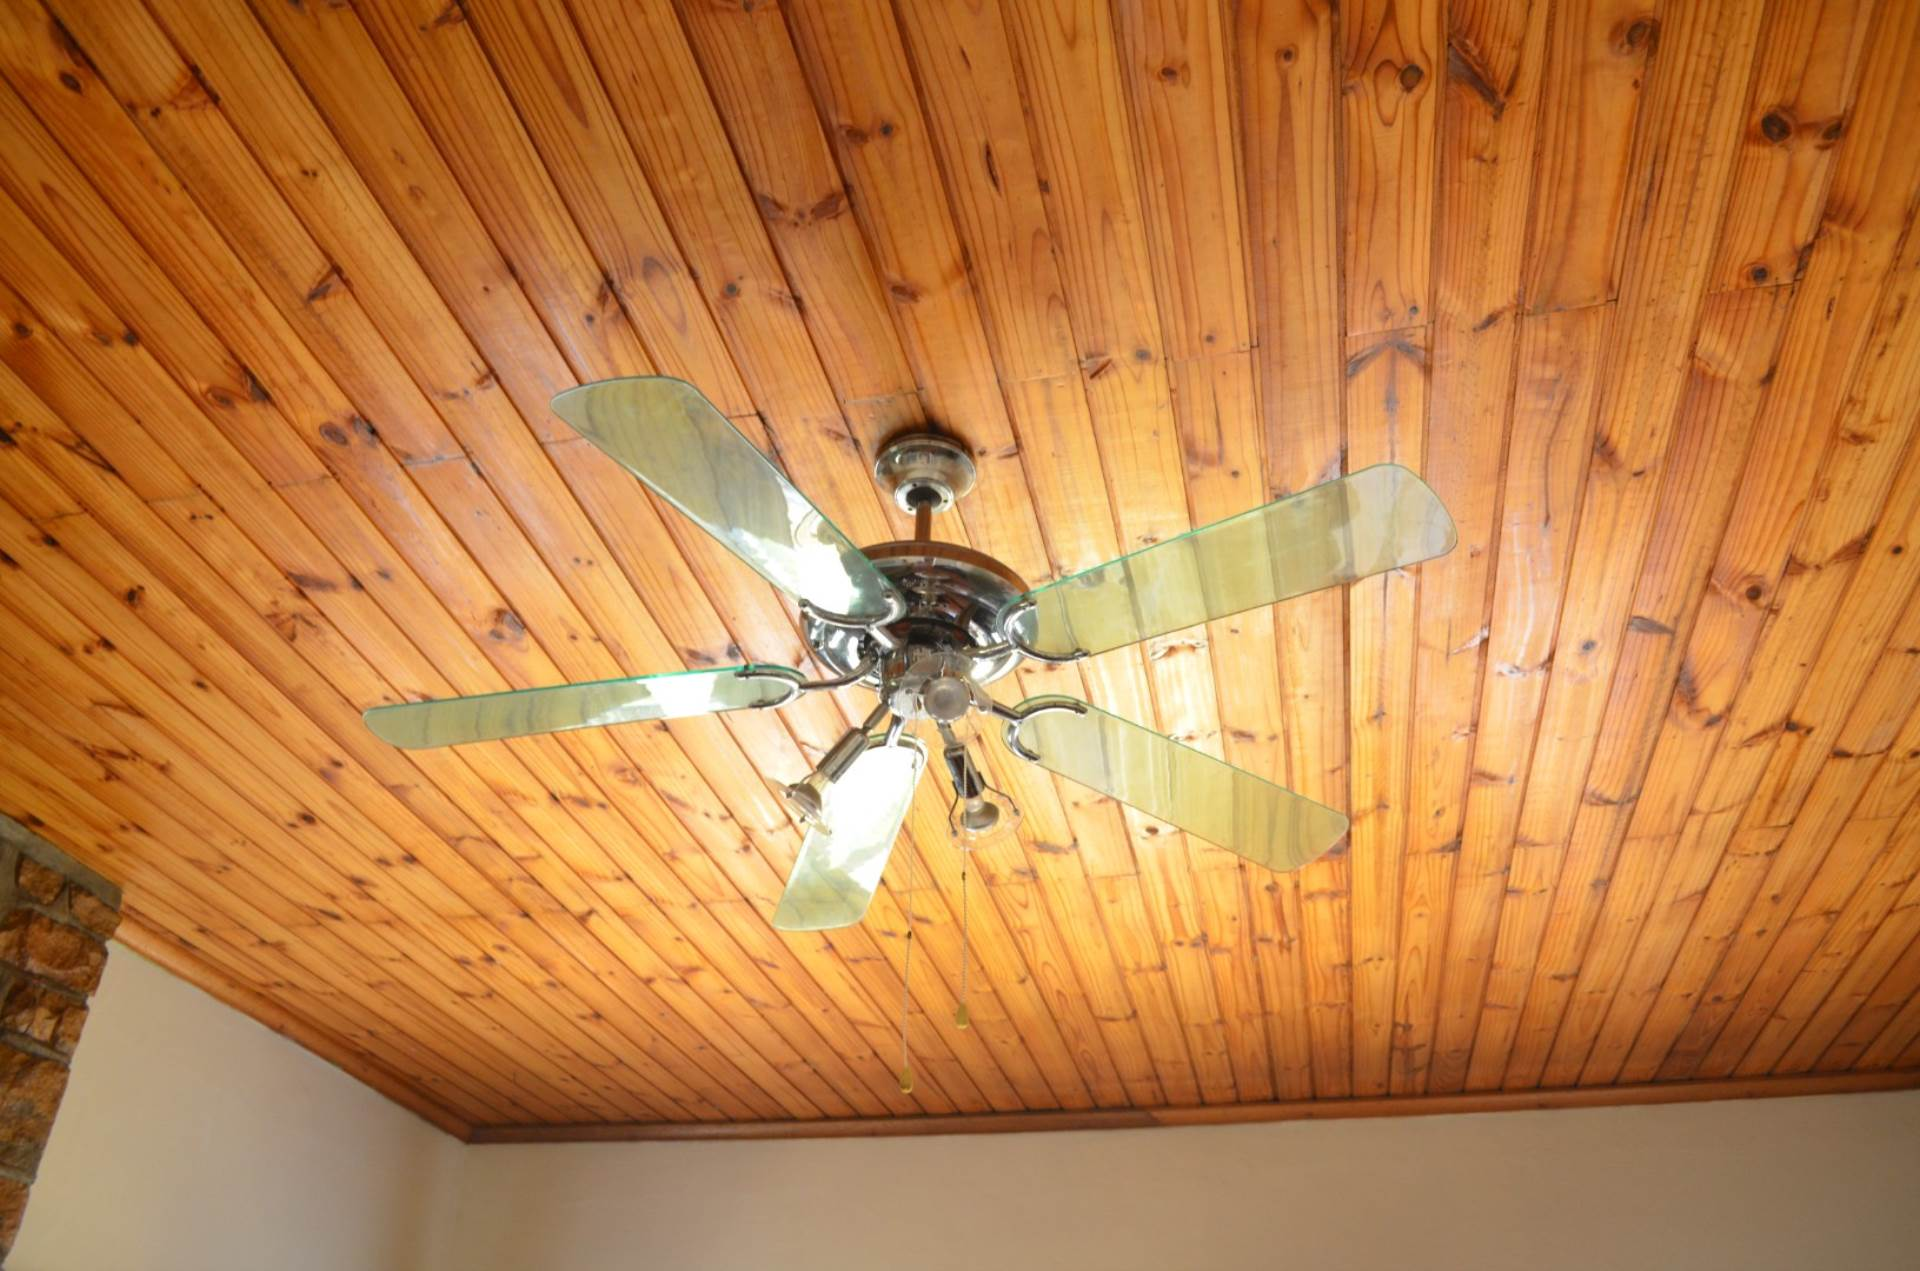 design in rustic fans you room ideas living western wow small ceiling for lodge will contemporary modern that interior cool accessories make say marvelous